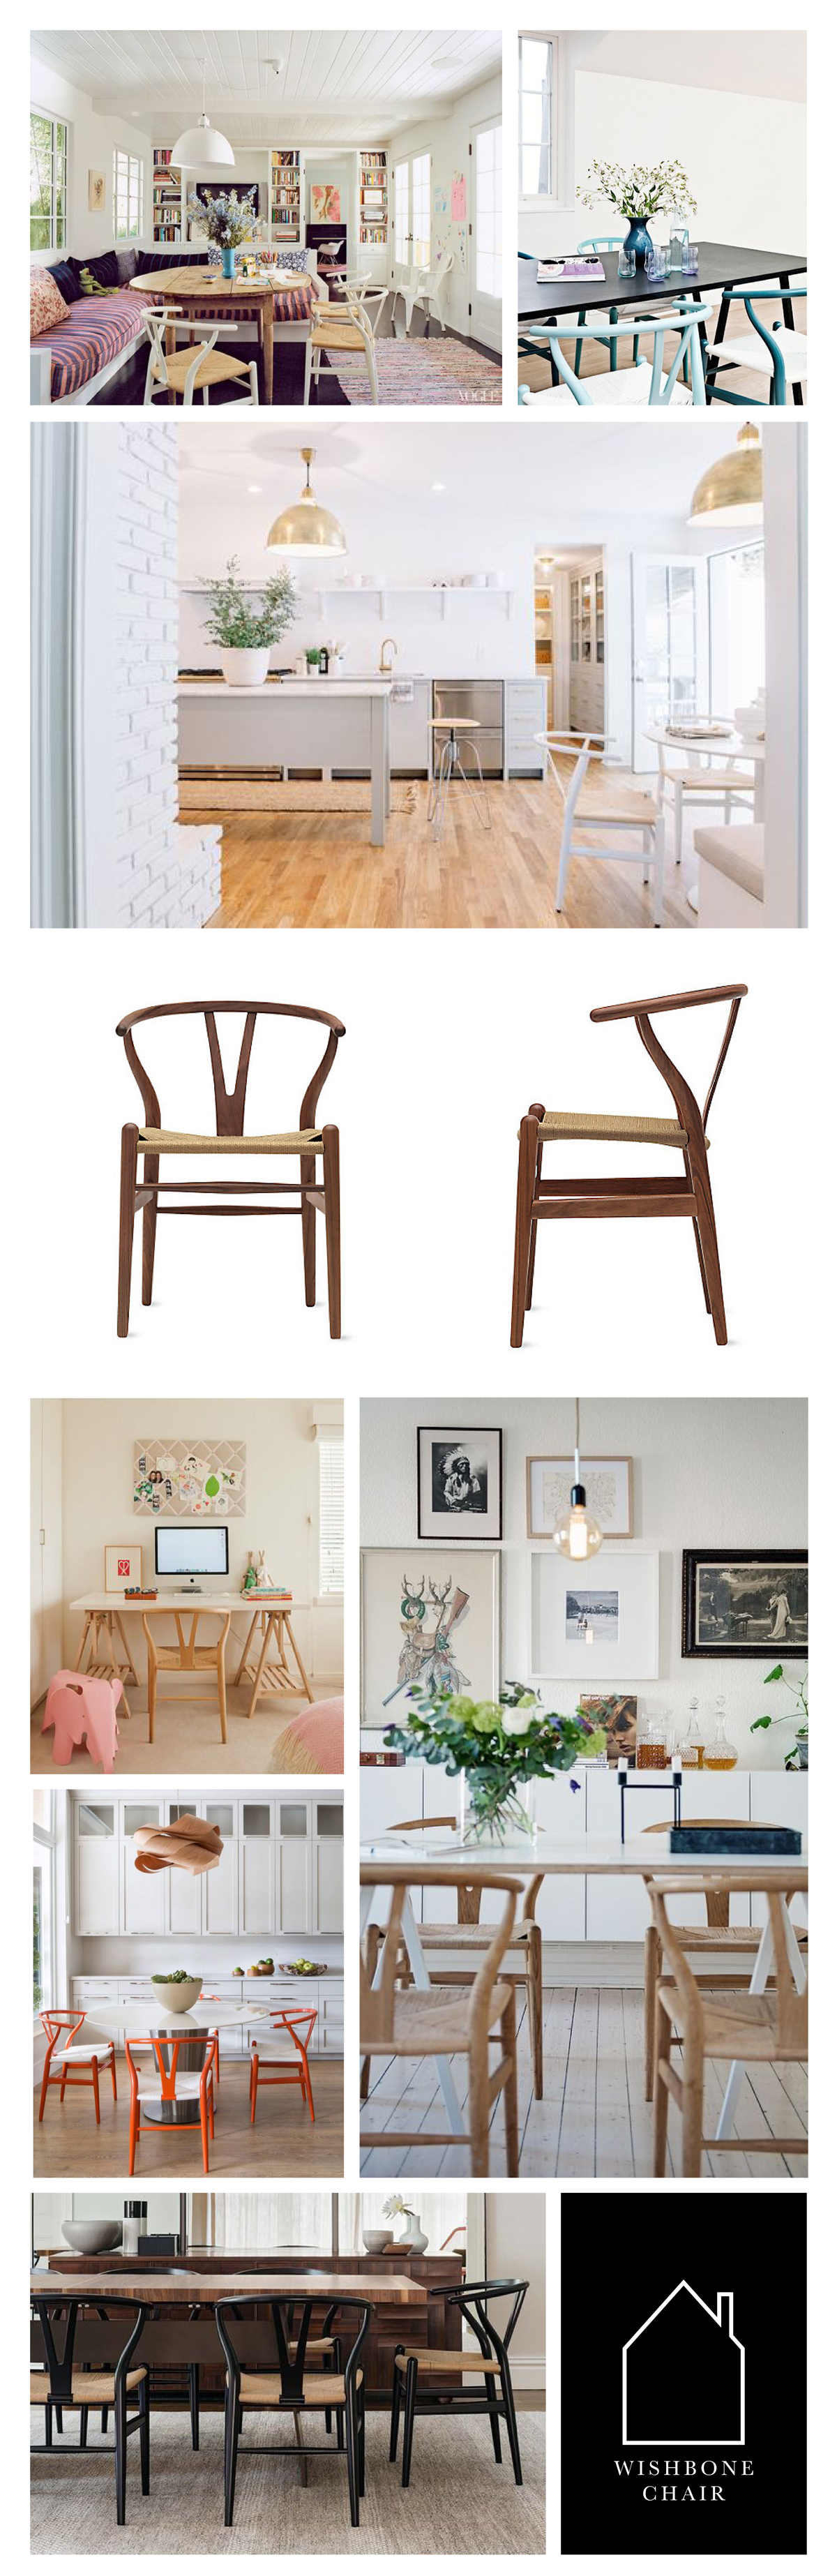 from top left - home of Amanda Peet via  VOGUE  - wishbone chairs in blue via  REMODELISTA  -  kitchen design by  Pencil & Paper Development Co.  - wishbone chair in walnut via  DWR  - kids desk space via  StyleCaster  - source unknown - design by  Krista Watterworth  - Figtree House by  Arent & Pyke